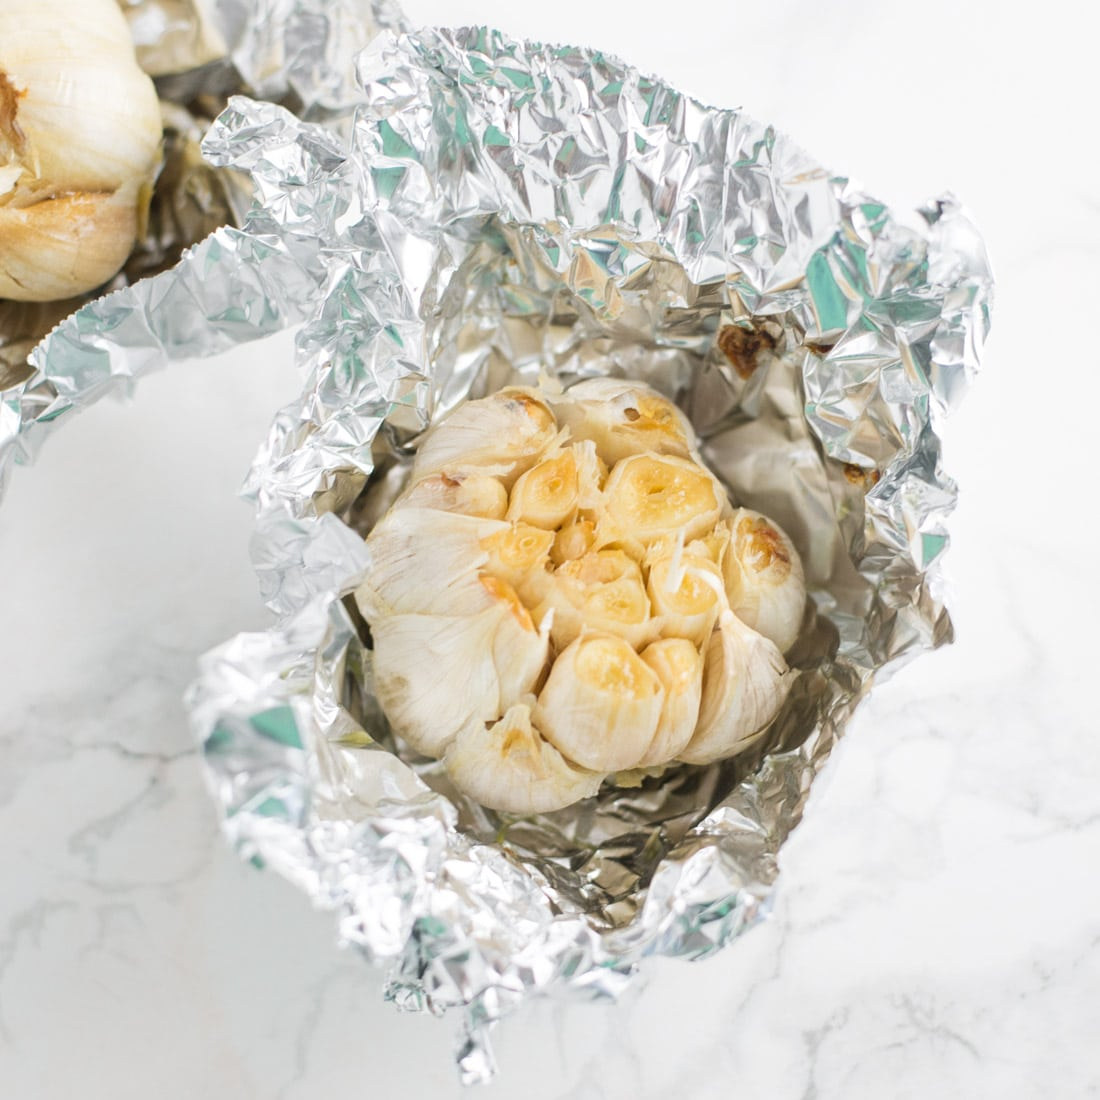 How to Roast Garlic -- Roasted garlic is so easy to make and a great kitchen staple to keep on hand. Roasted garlic is a healthy way to add flavor to dishes. | mindfulavocado